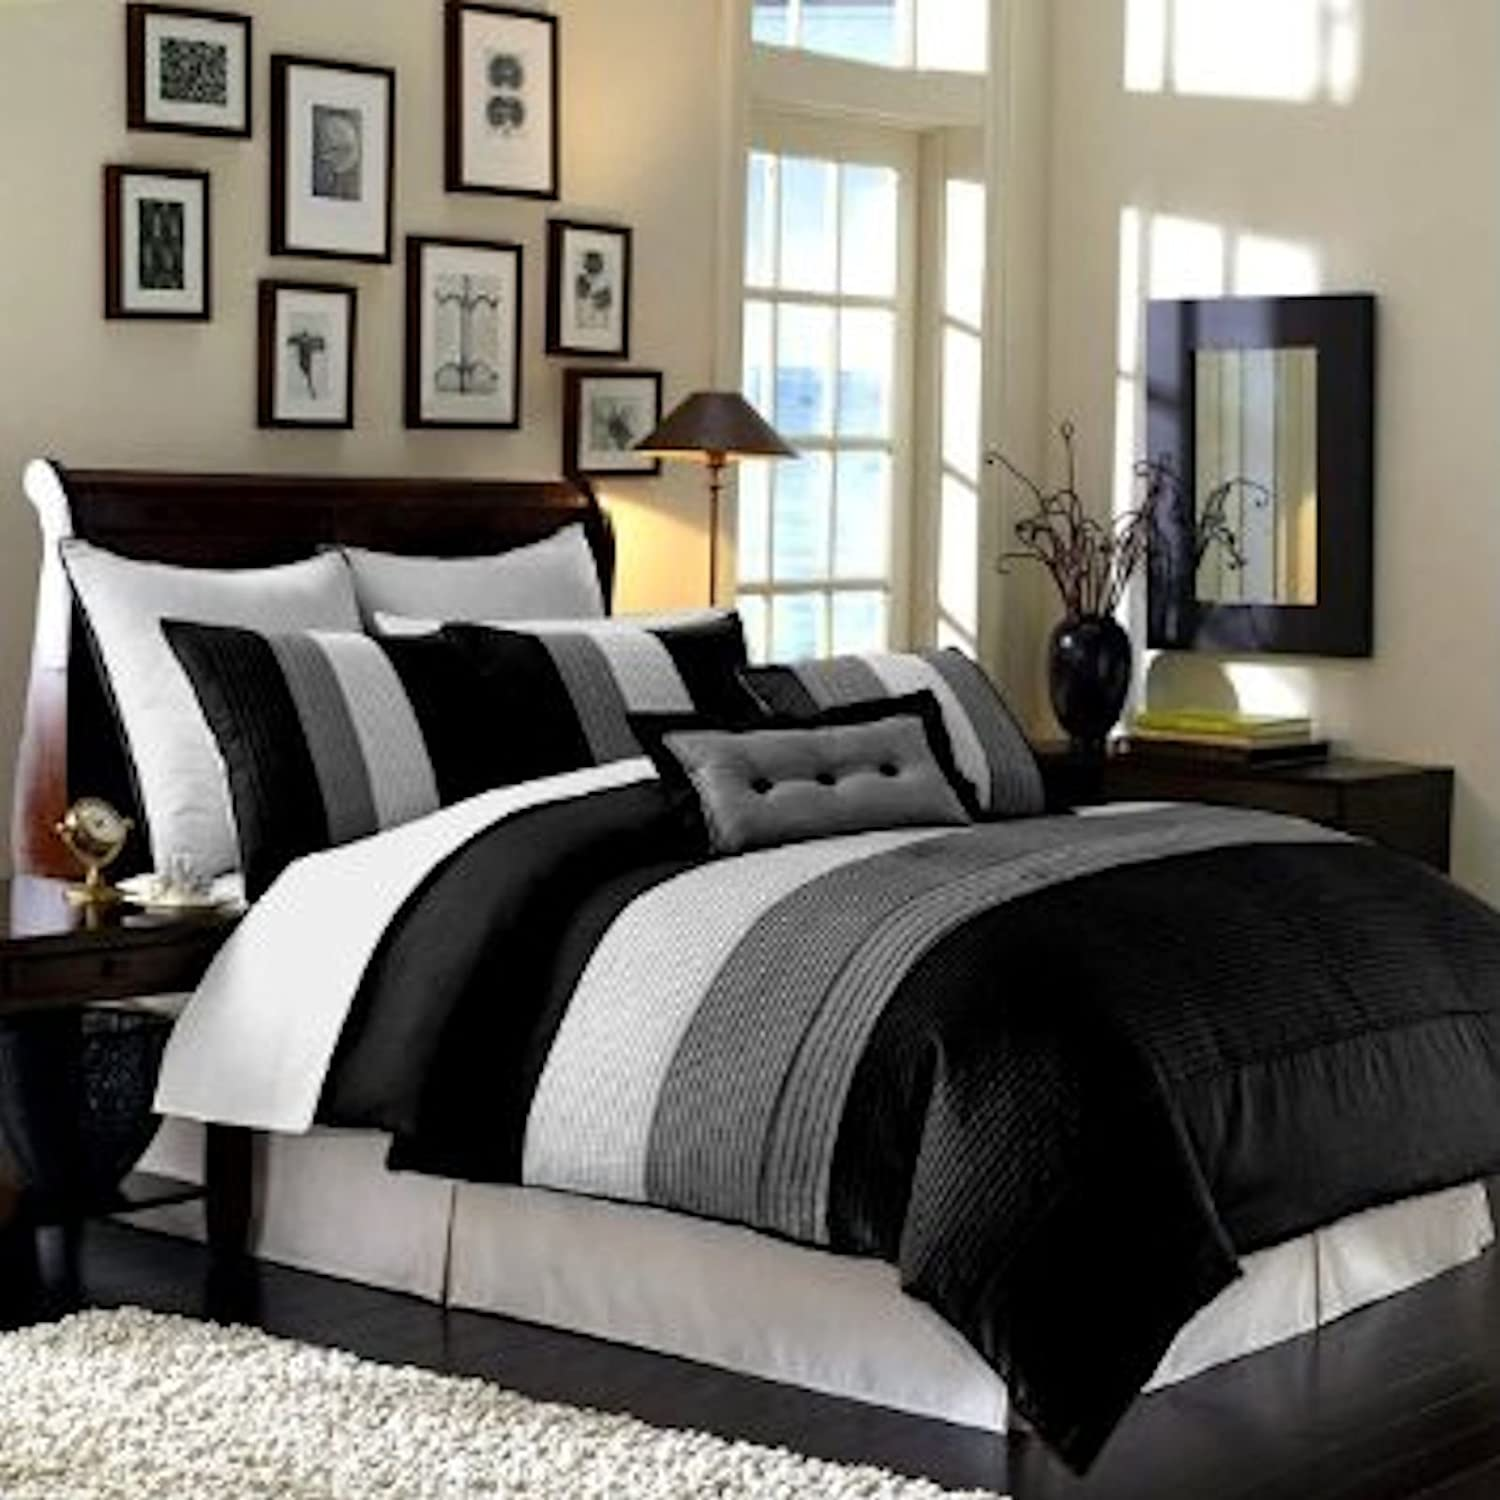 black and white king size comforter sets Amazon.com: Legacy Decor 8pcs Modern Black White Grey Luxury  black and white king size comforter sets